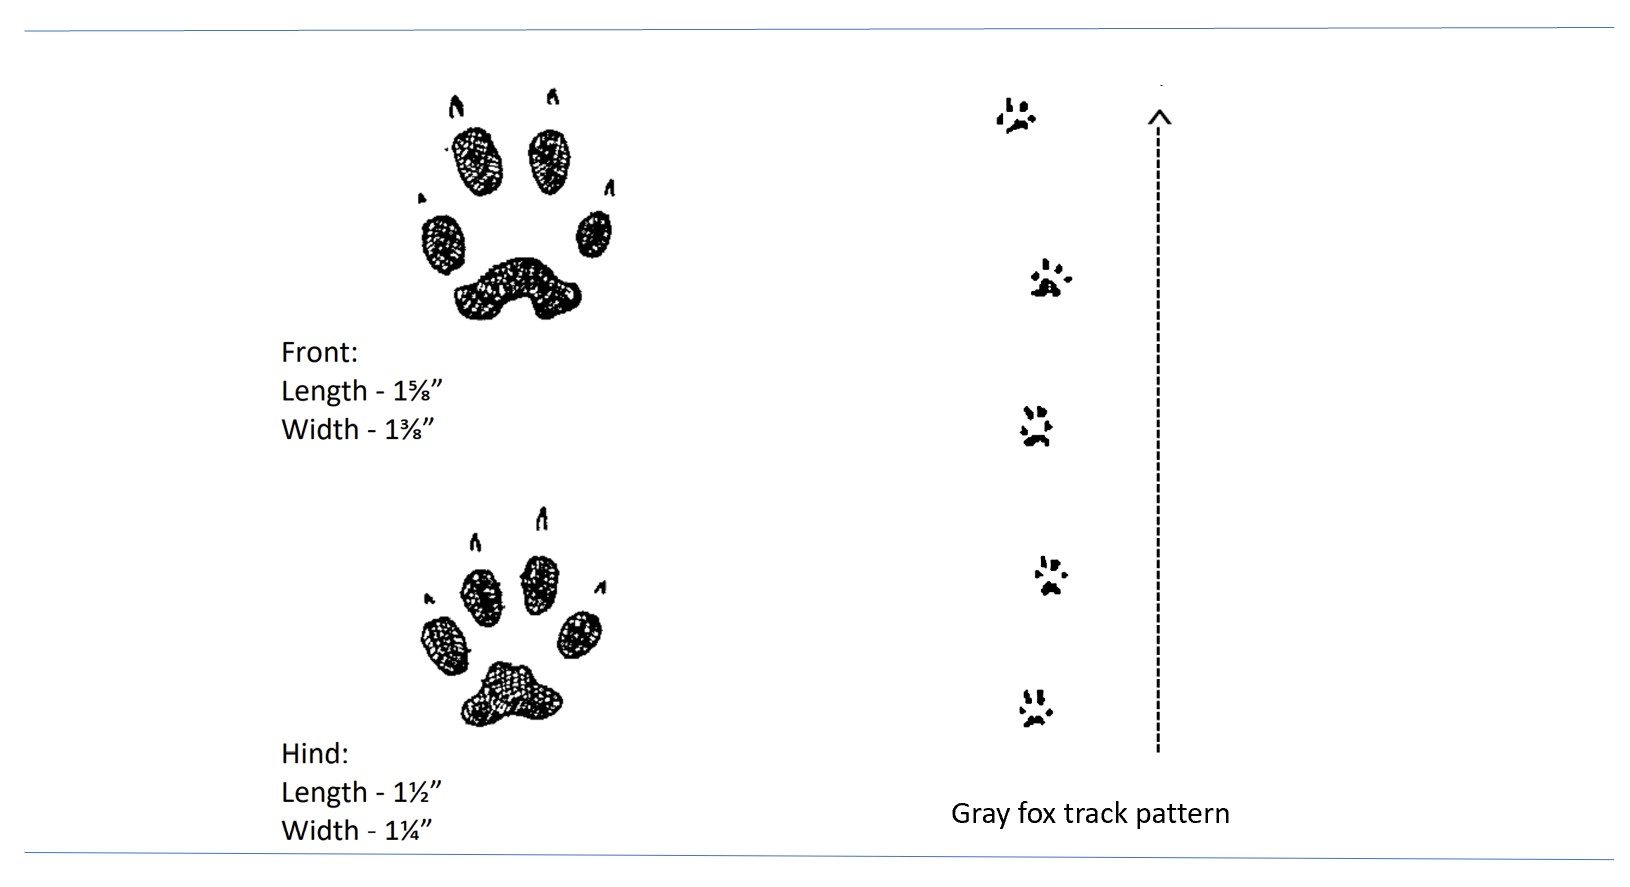 Illustrated tracks of a gray fox.